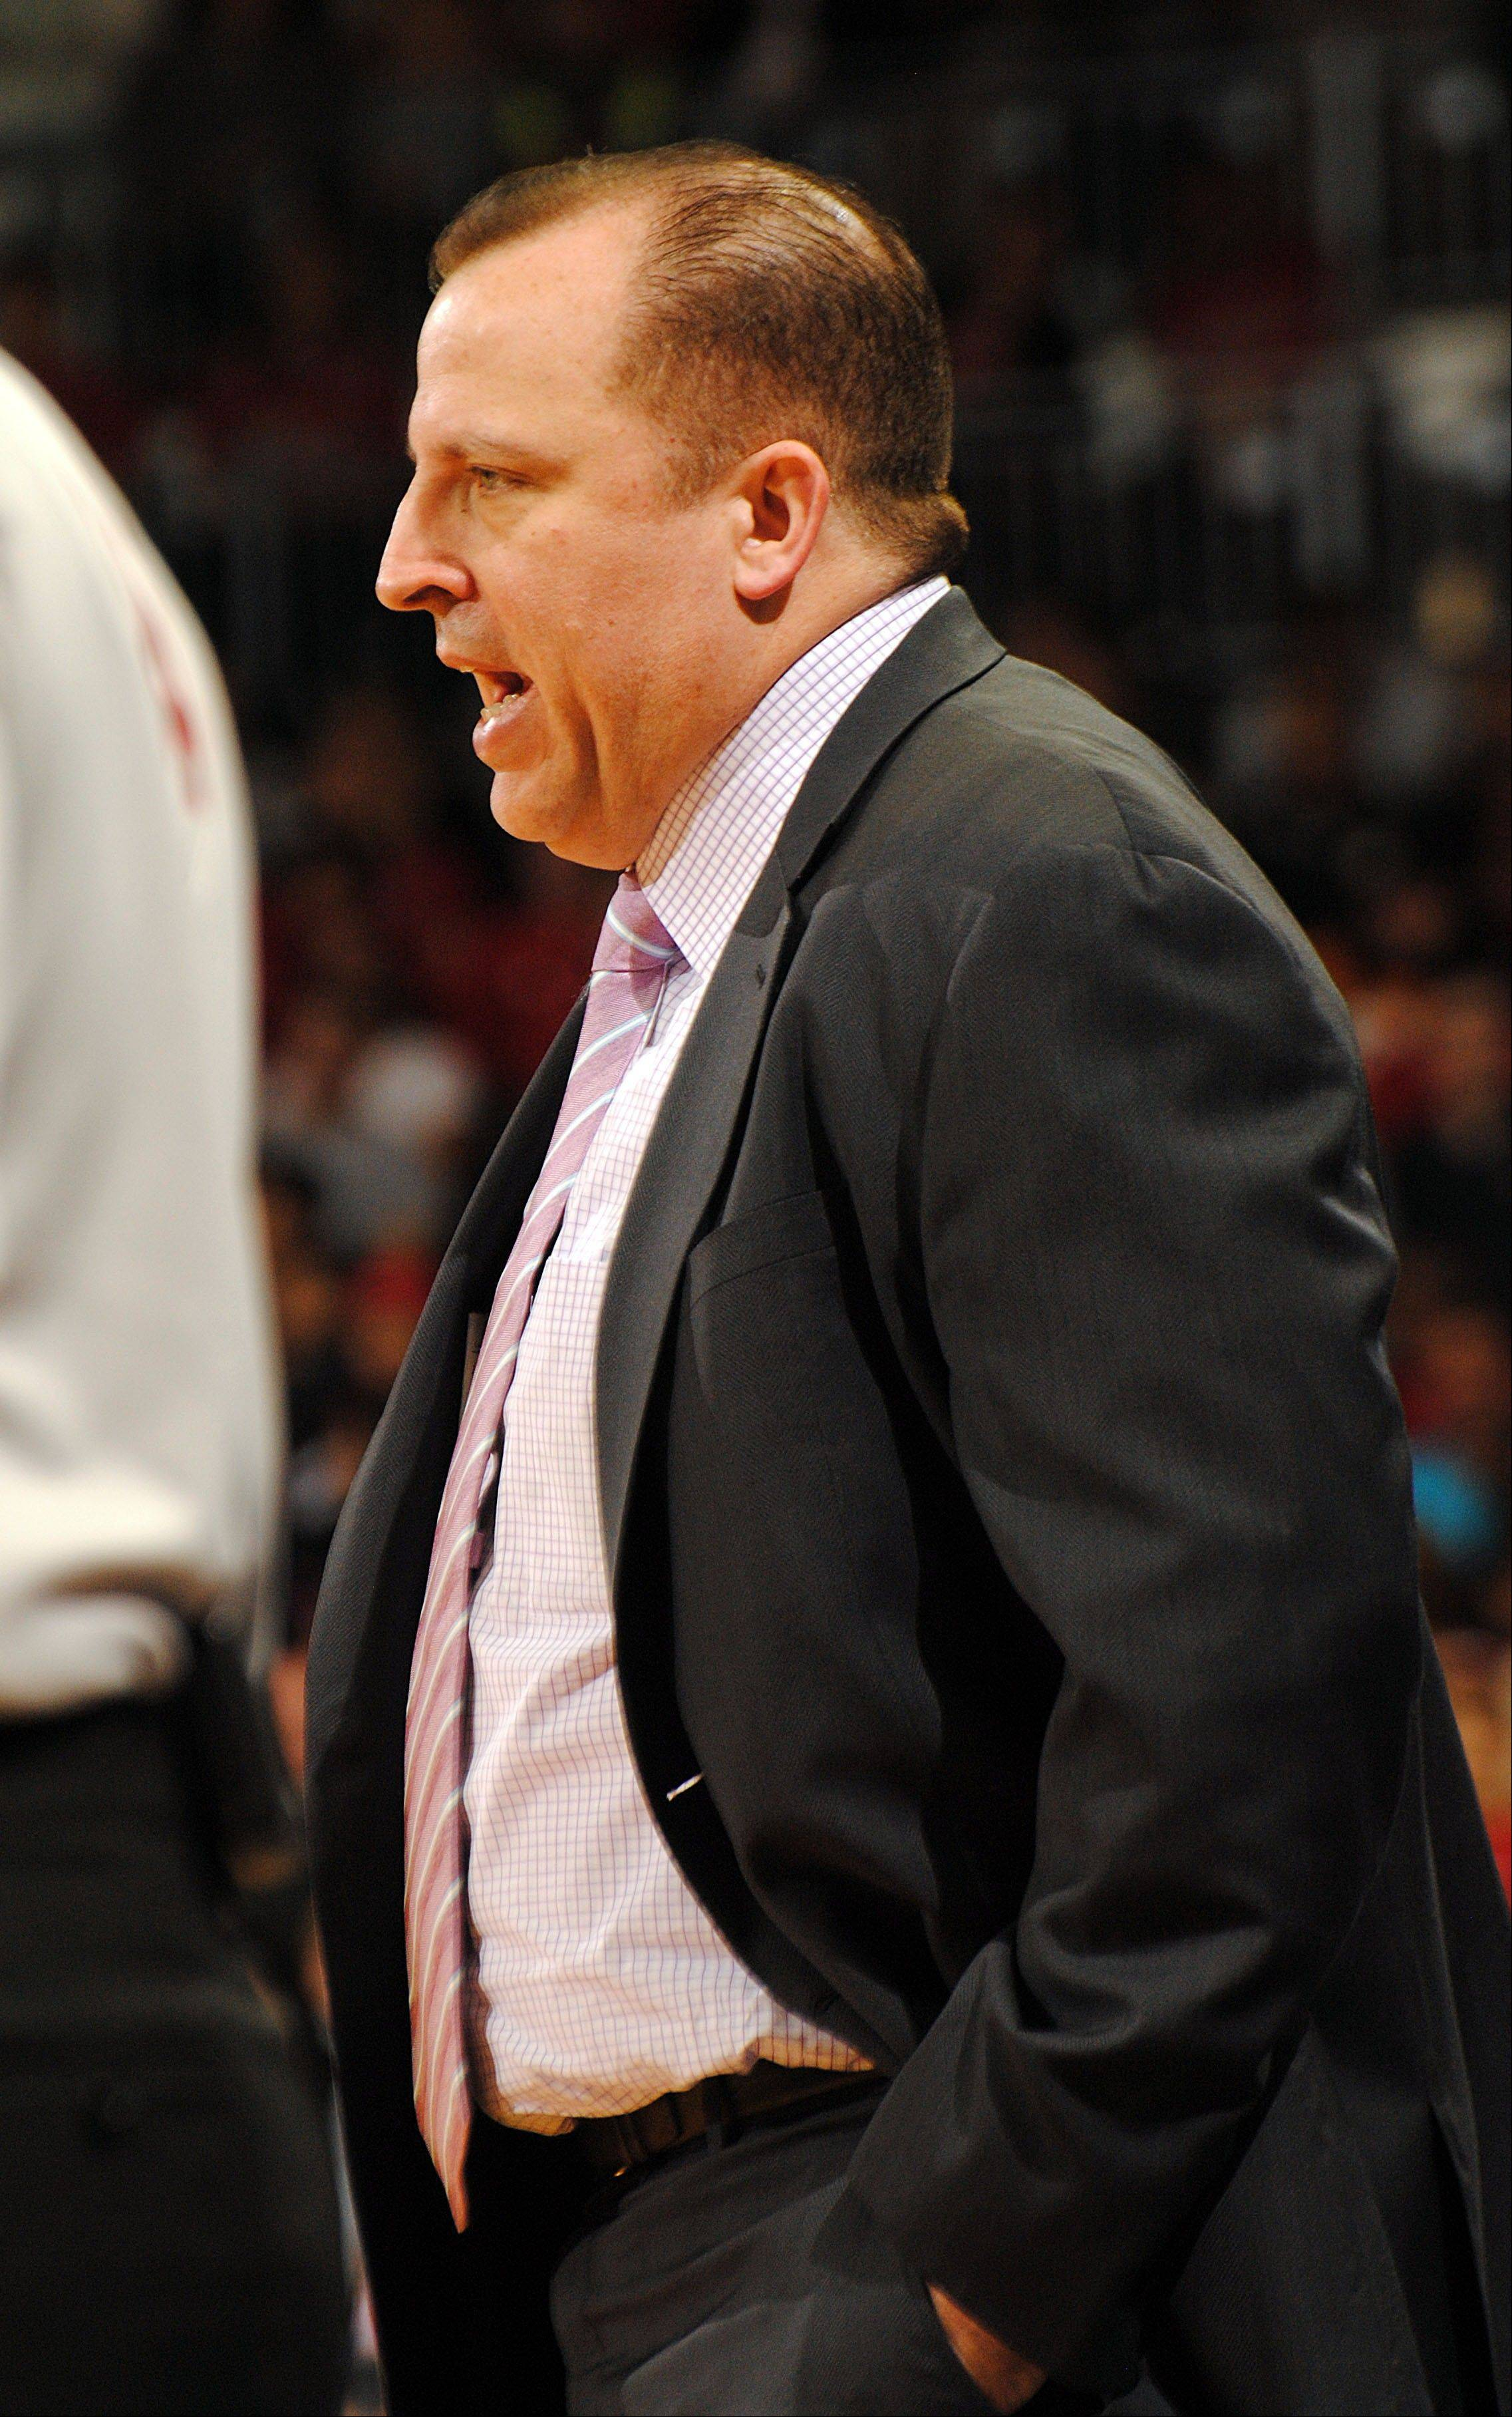 Bulls coach Tom Thibodeau shouts instructions to his team during the first half of the preseason finale Friday against the Indiana Pacers in South Bend, Ind.